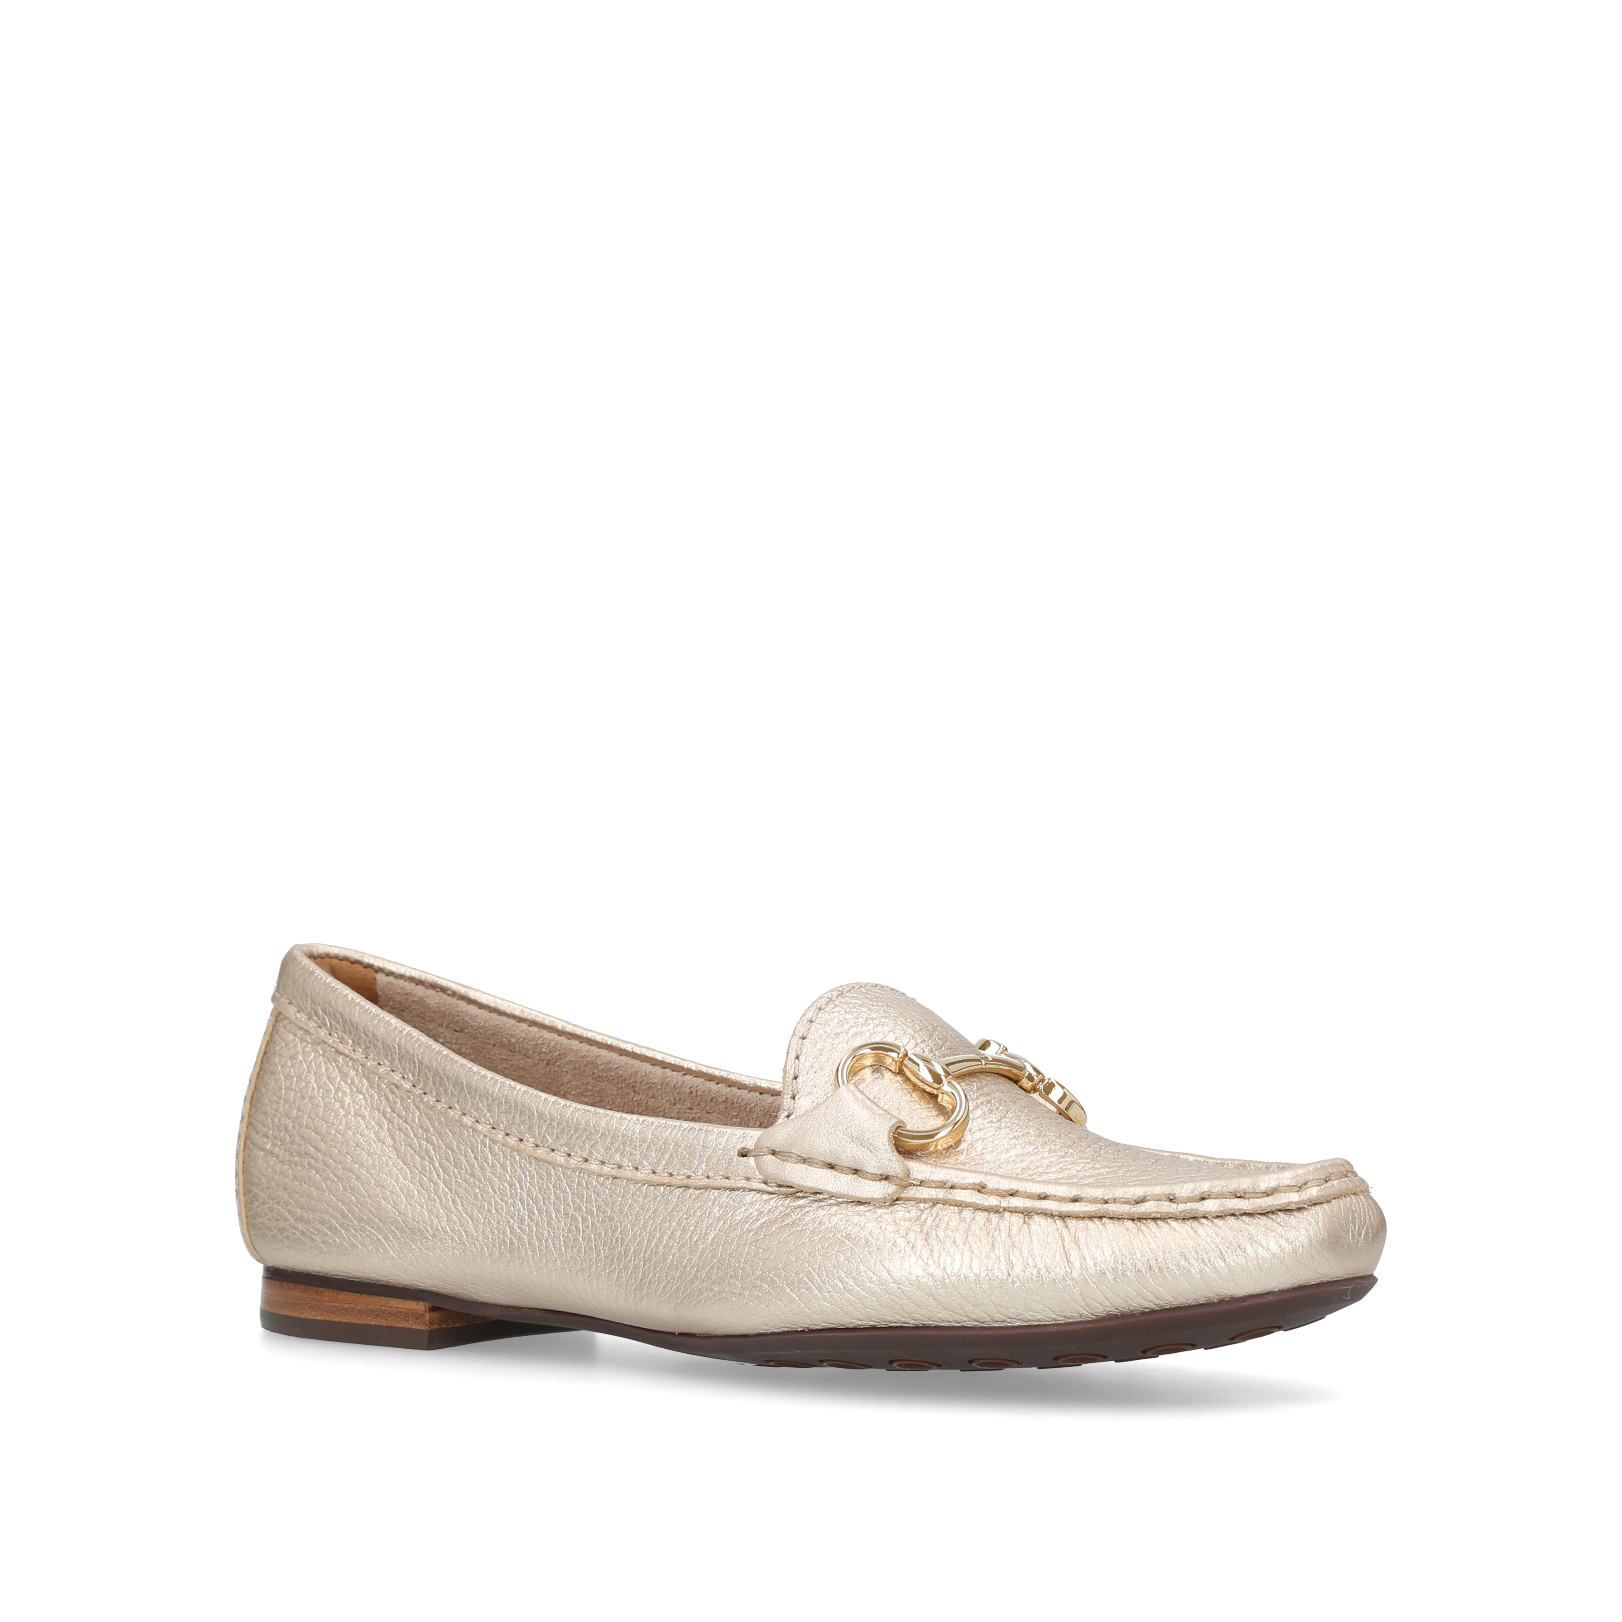 Carvela Comfort Cindy Loafers, Gold Silverlic